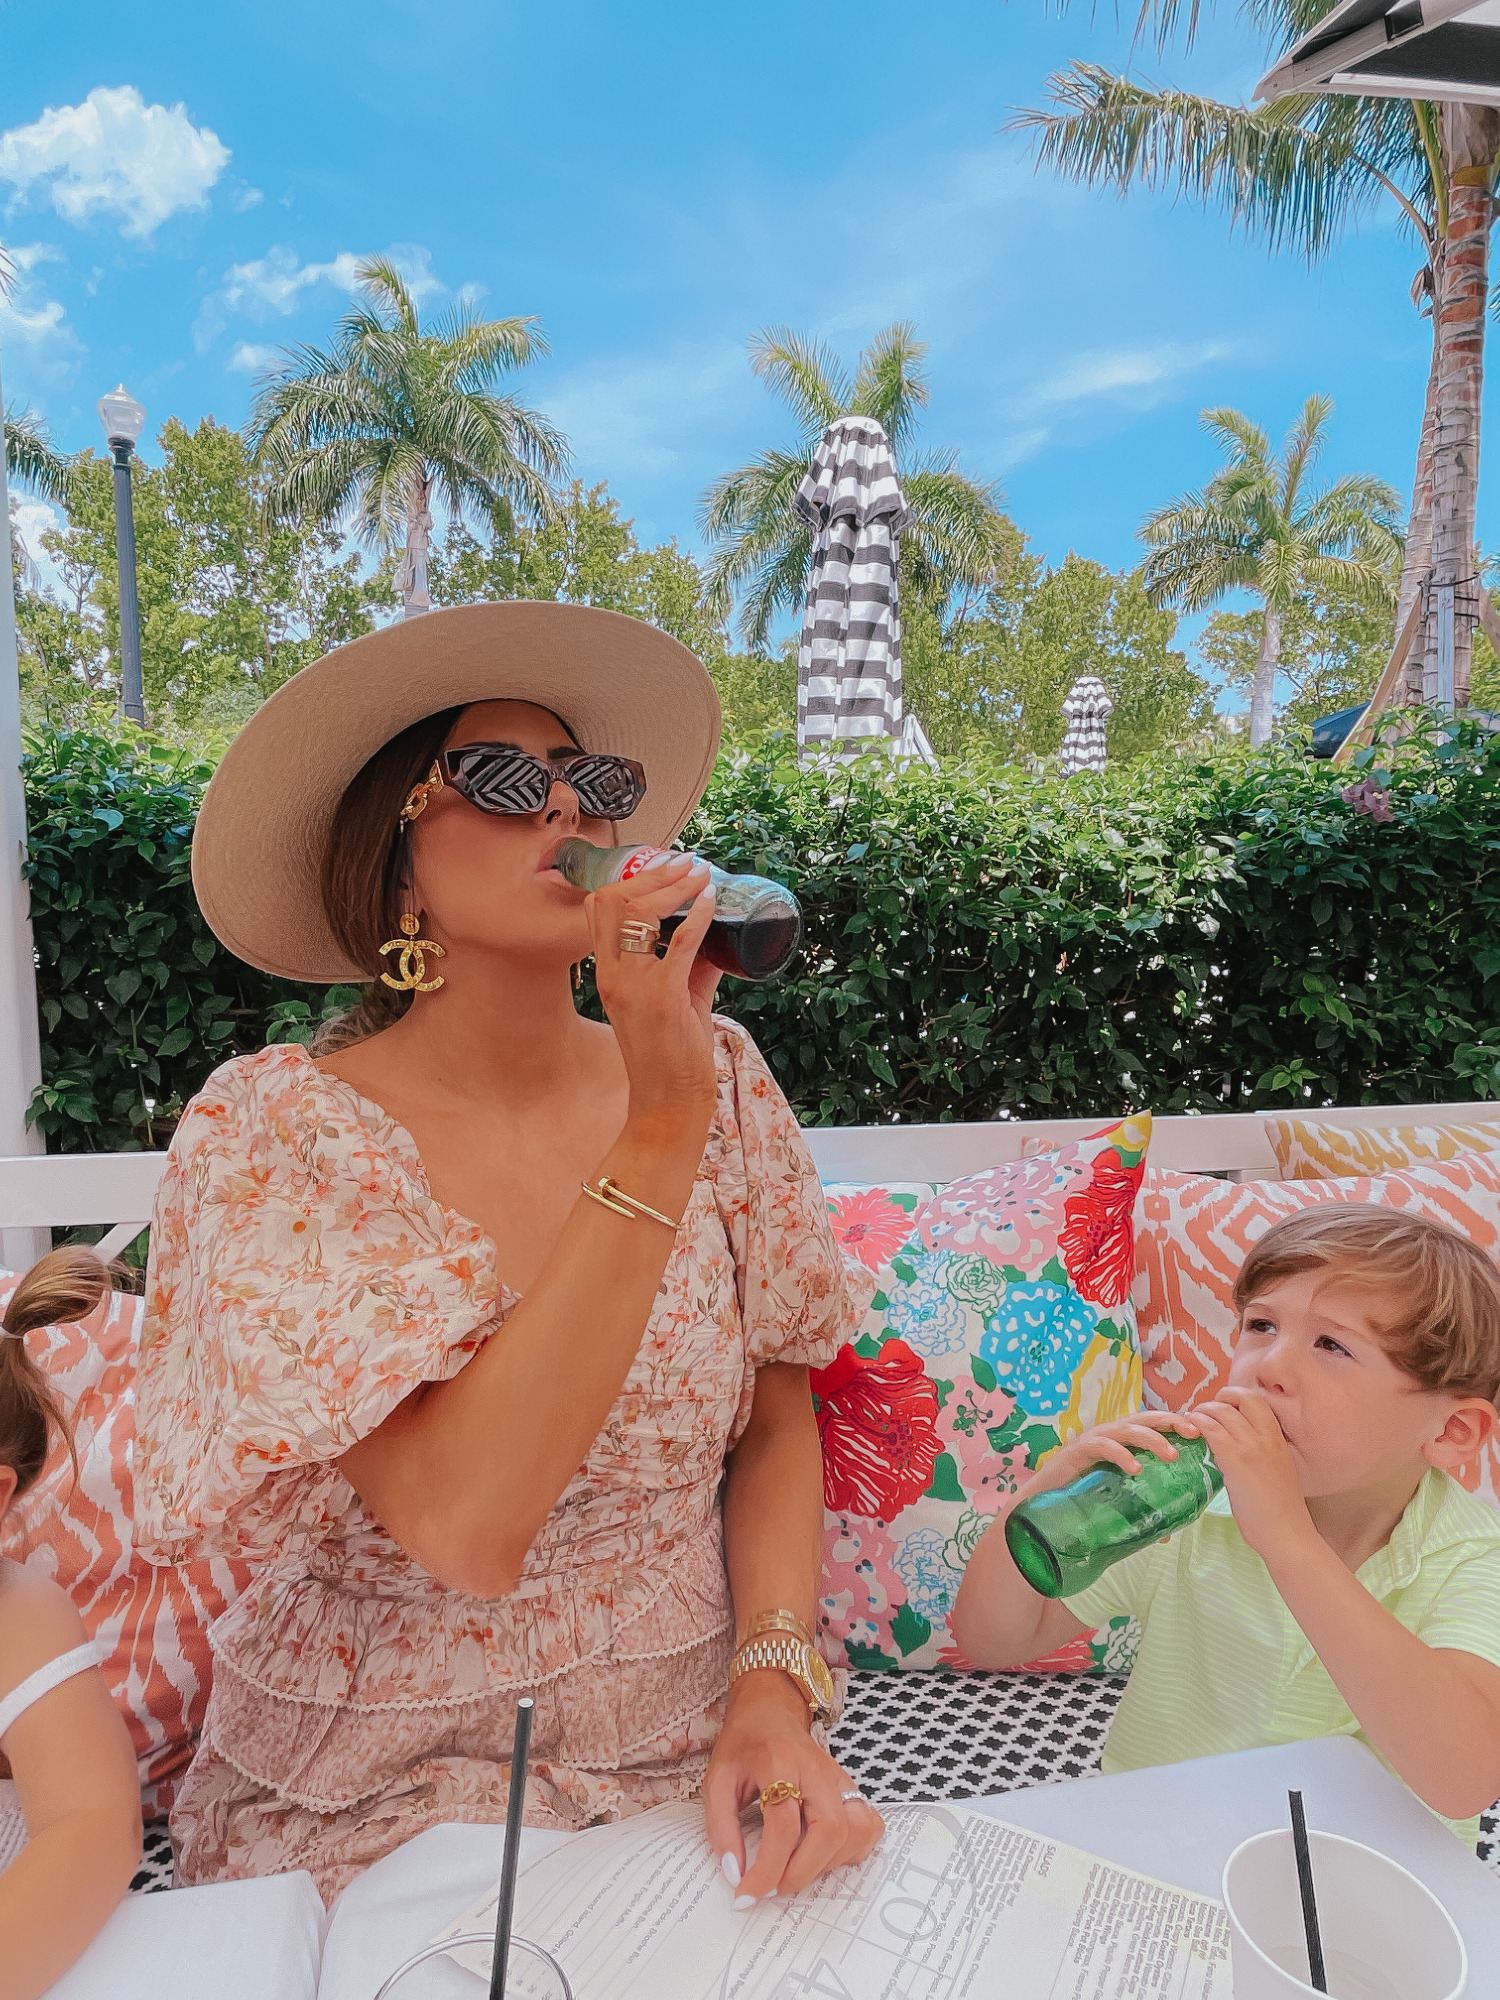 Palm beach white elephant lola41, cute outfit ideas palm beach, where to stay palm beac